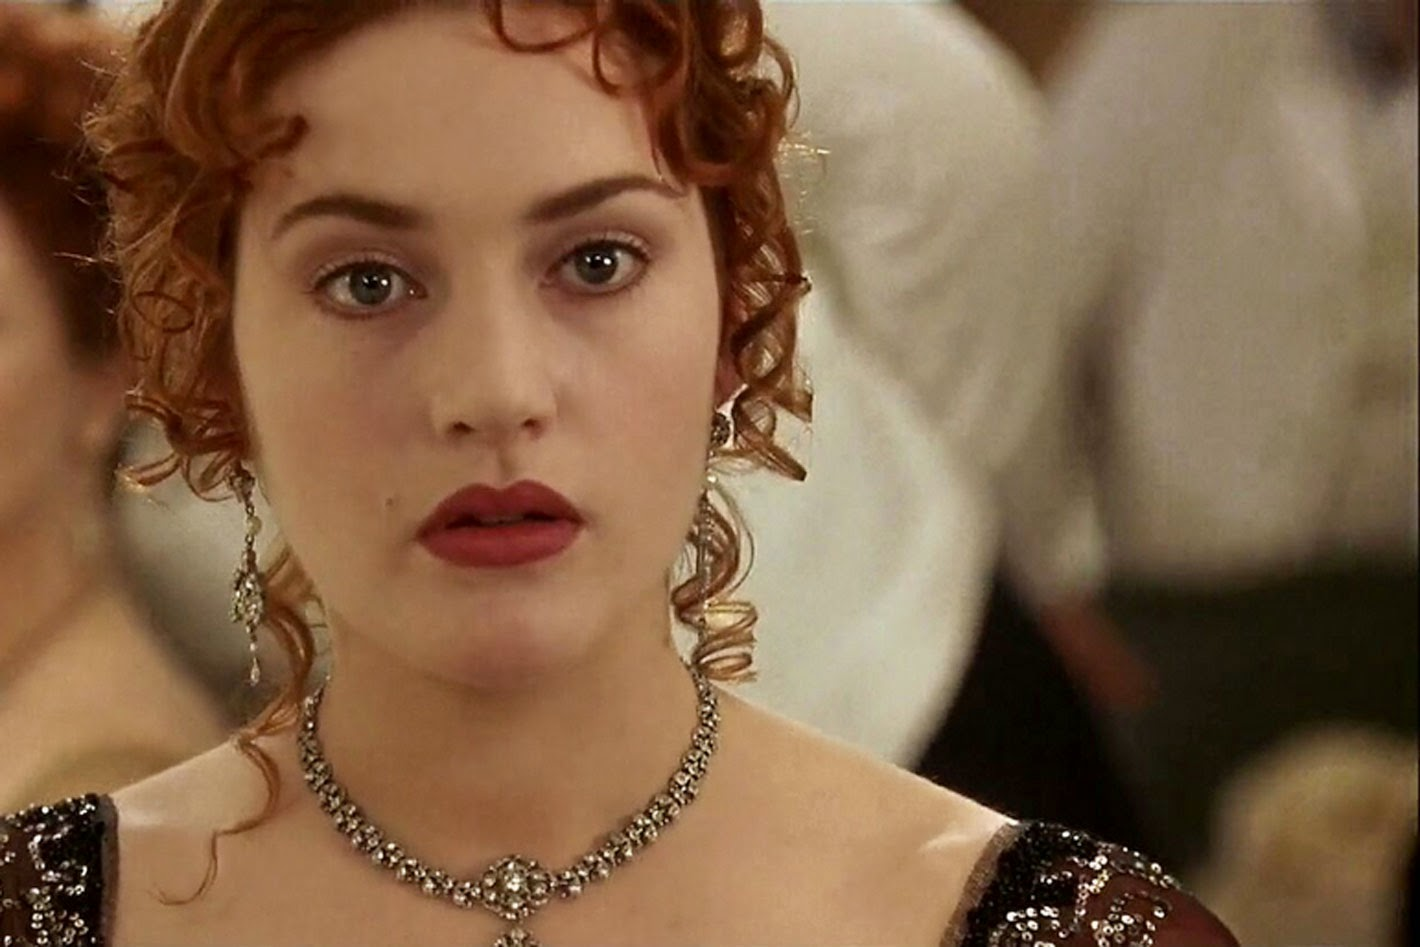 Cute Kate Winslet in Titanic